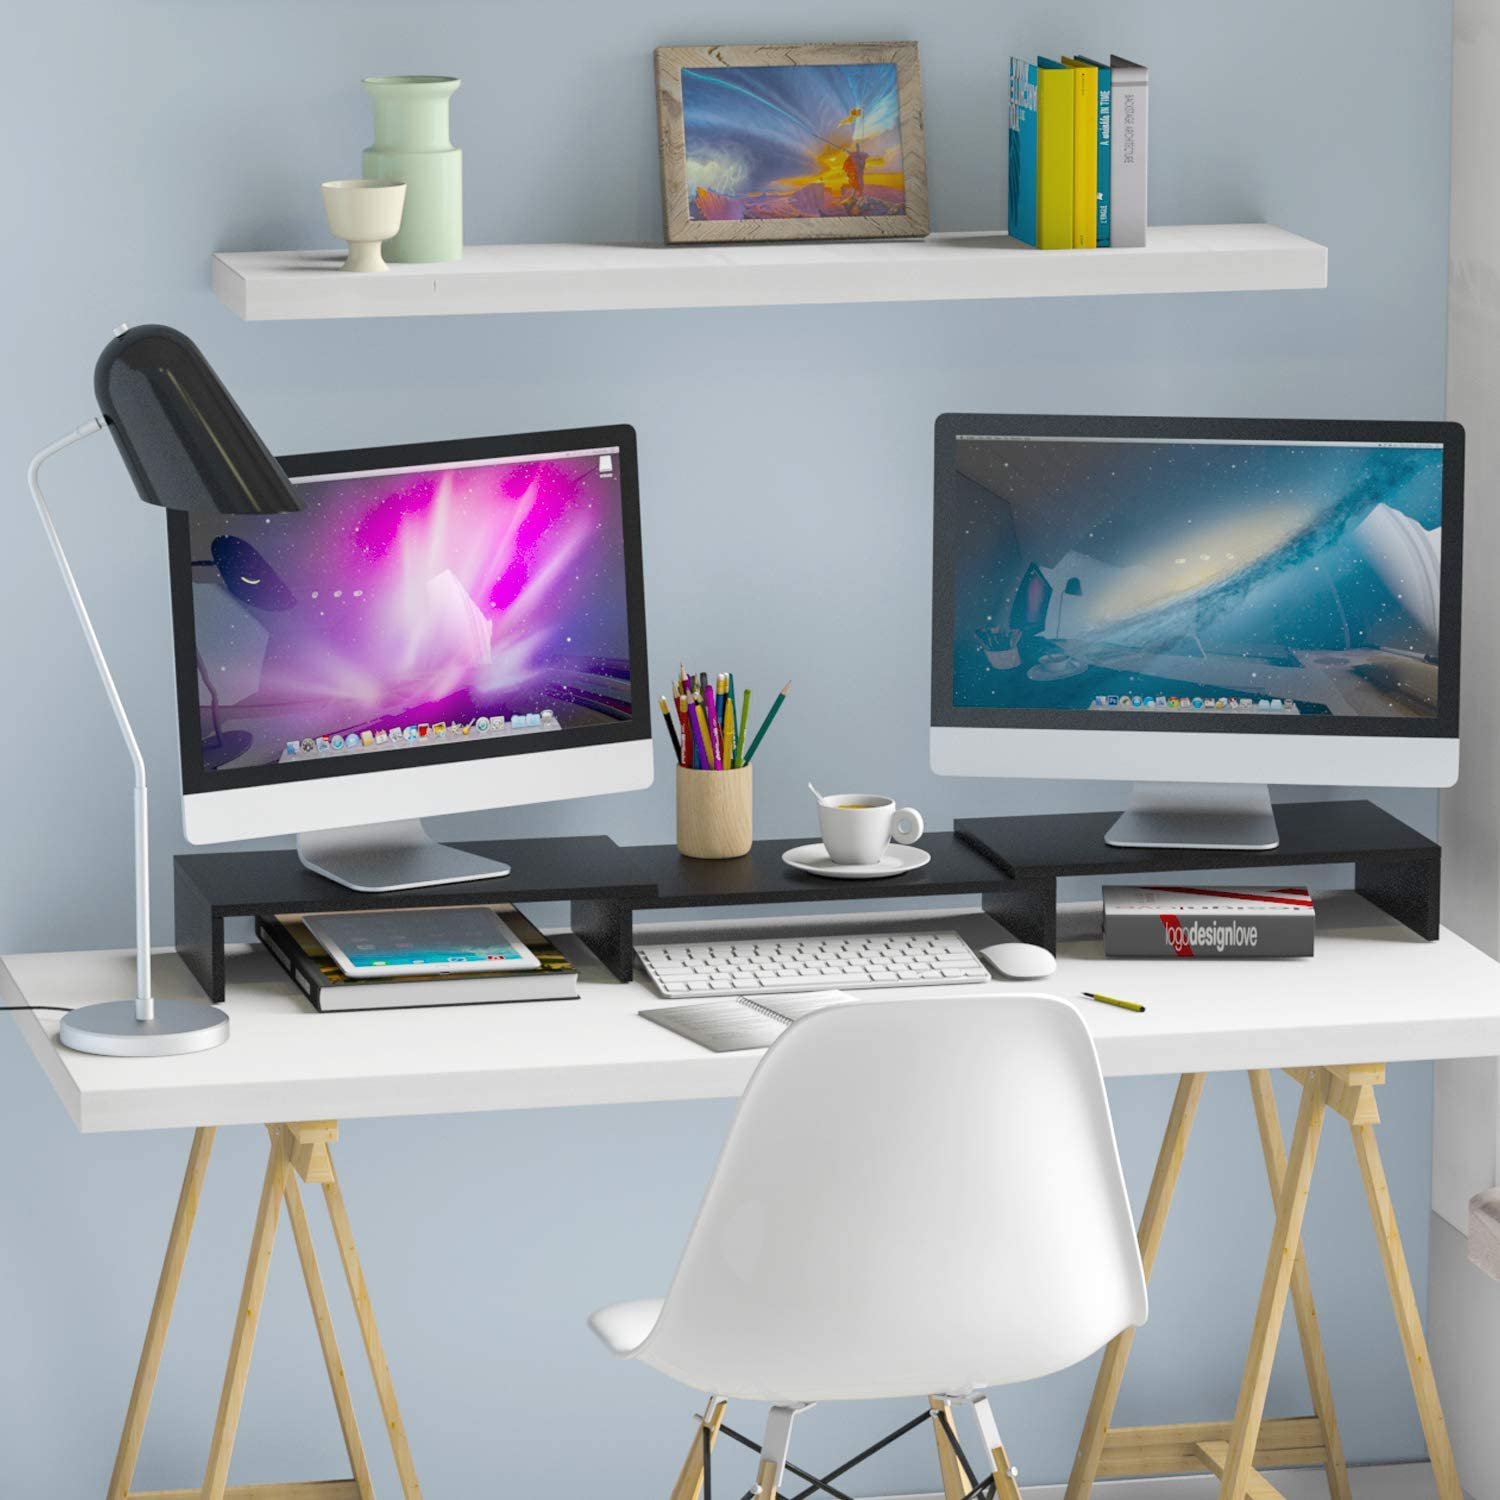 5Rcom Dual Monitor Stand 3 Shelves Desk Riser with Adjustable Length and Angle Computer TV PC Laptop Screen Stand, Multi Desktop Stand Storage Organizer for iMac, Printer, Notebook : Office Products